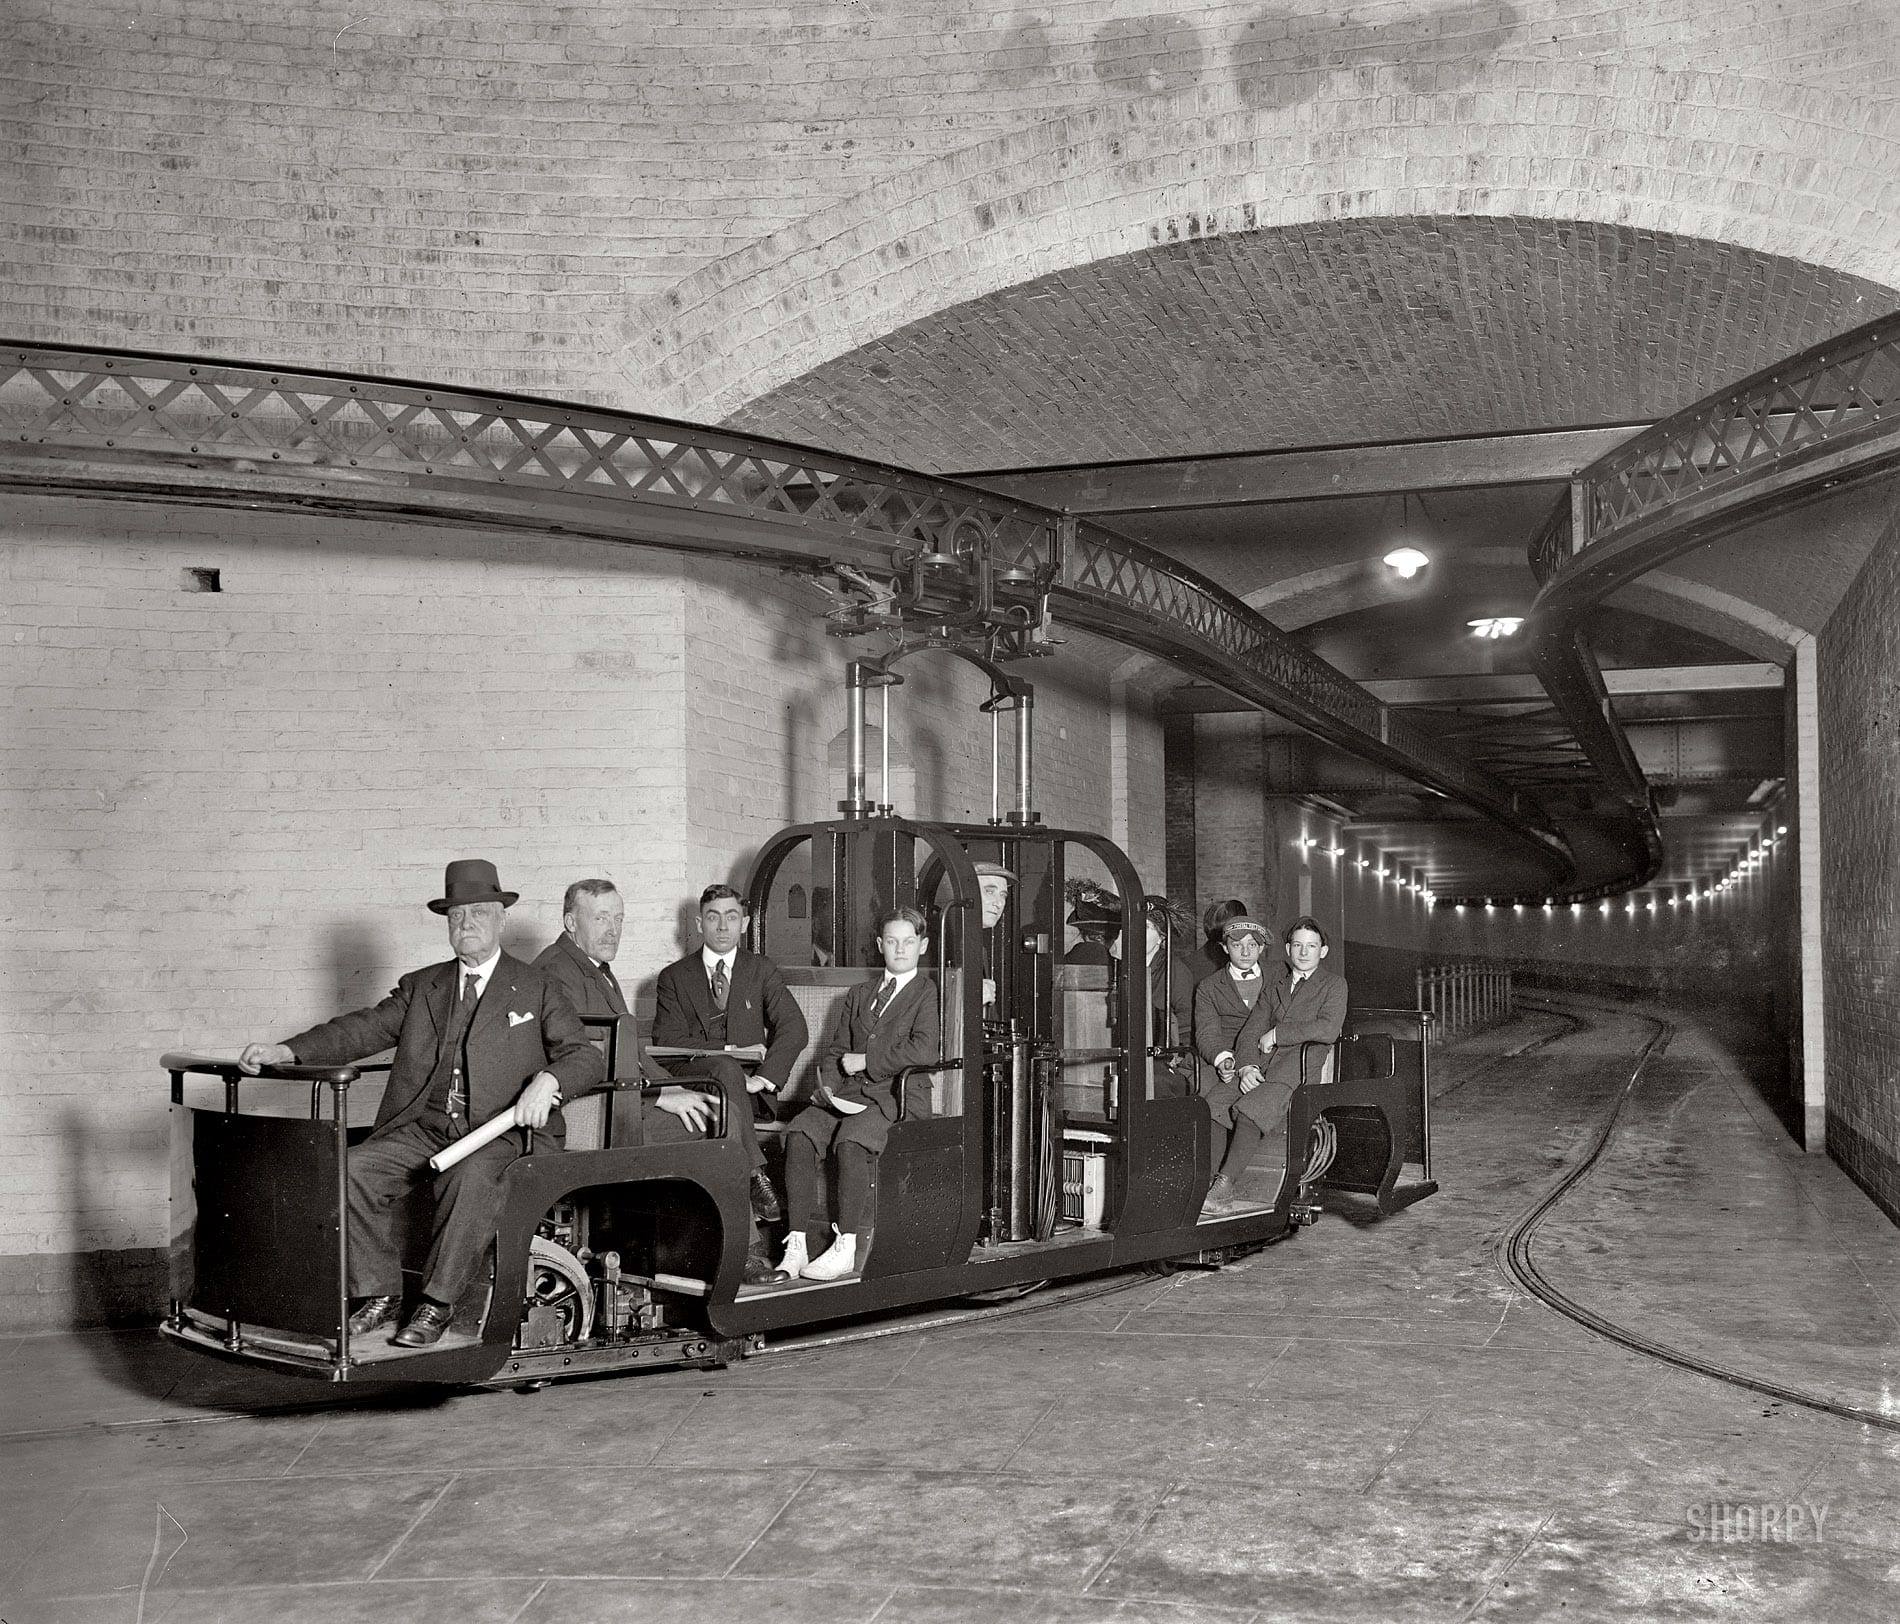 U.S. Senate subway circa 1915 (Shorpy)